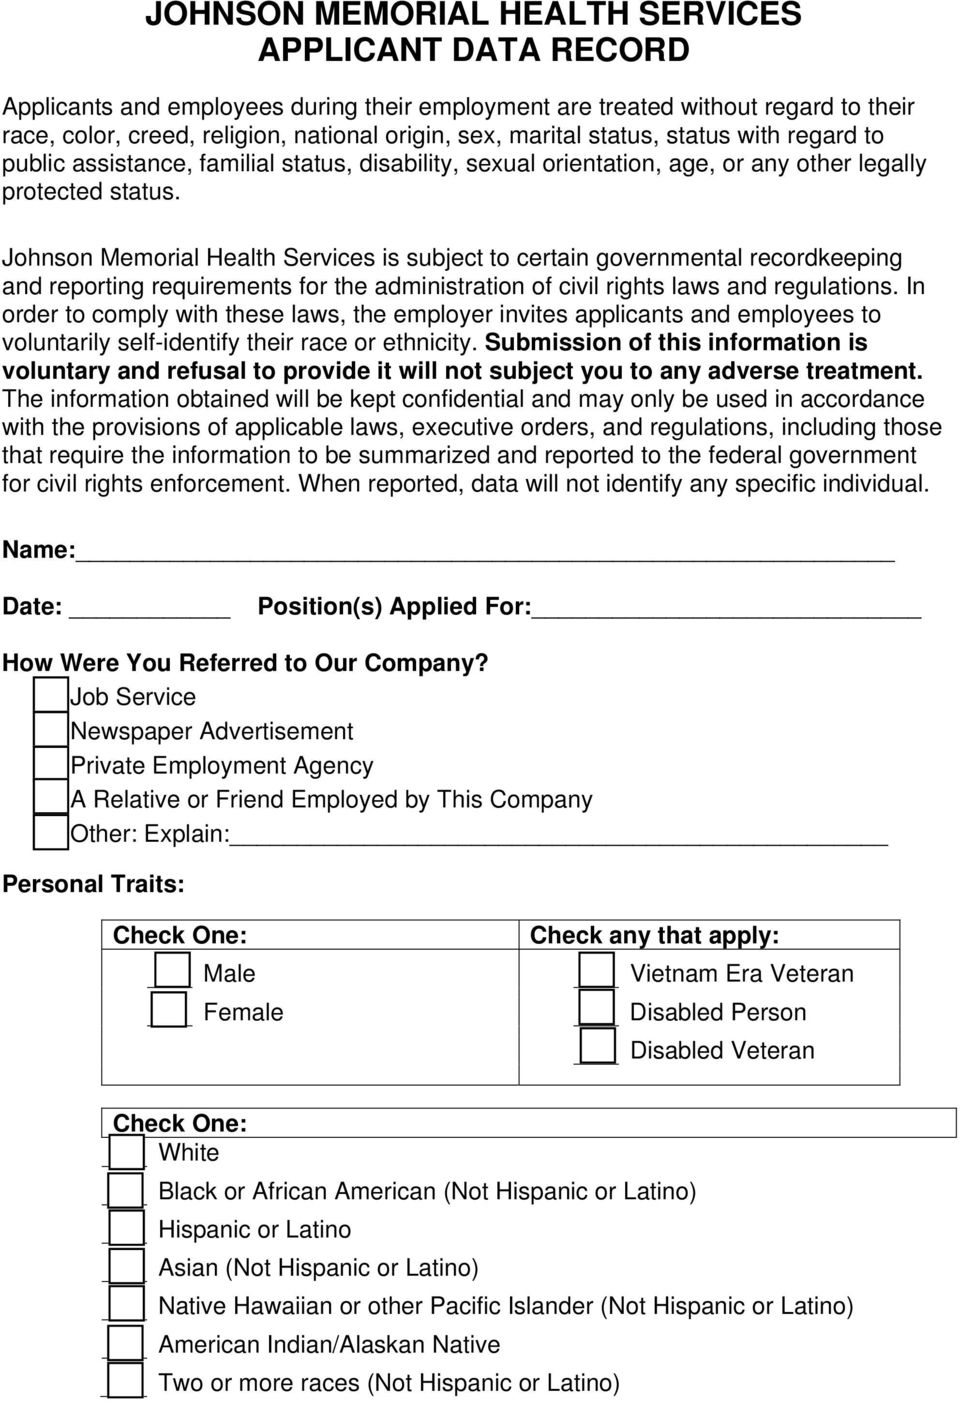 Johnson Memorial Health Services is subject to certain governmental recordkeeping and reporting requirements for the administration of civil rights laws and regulations.